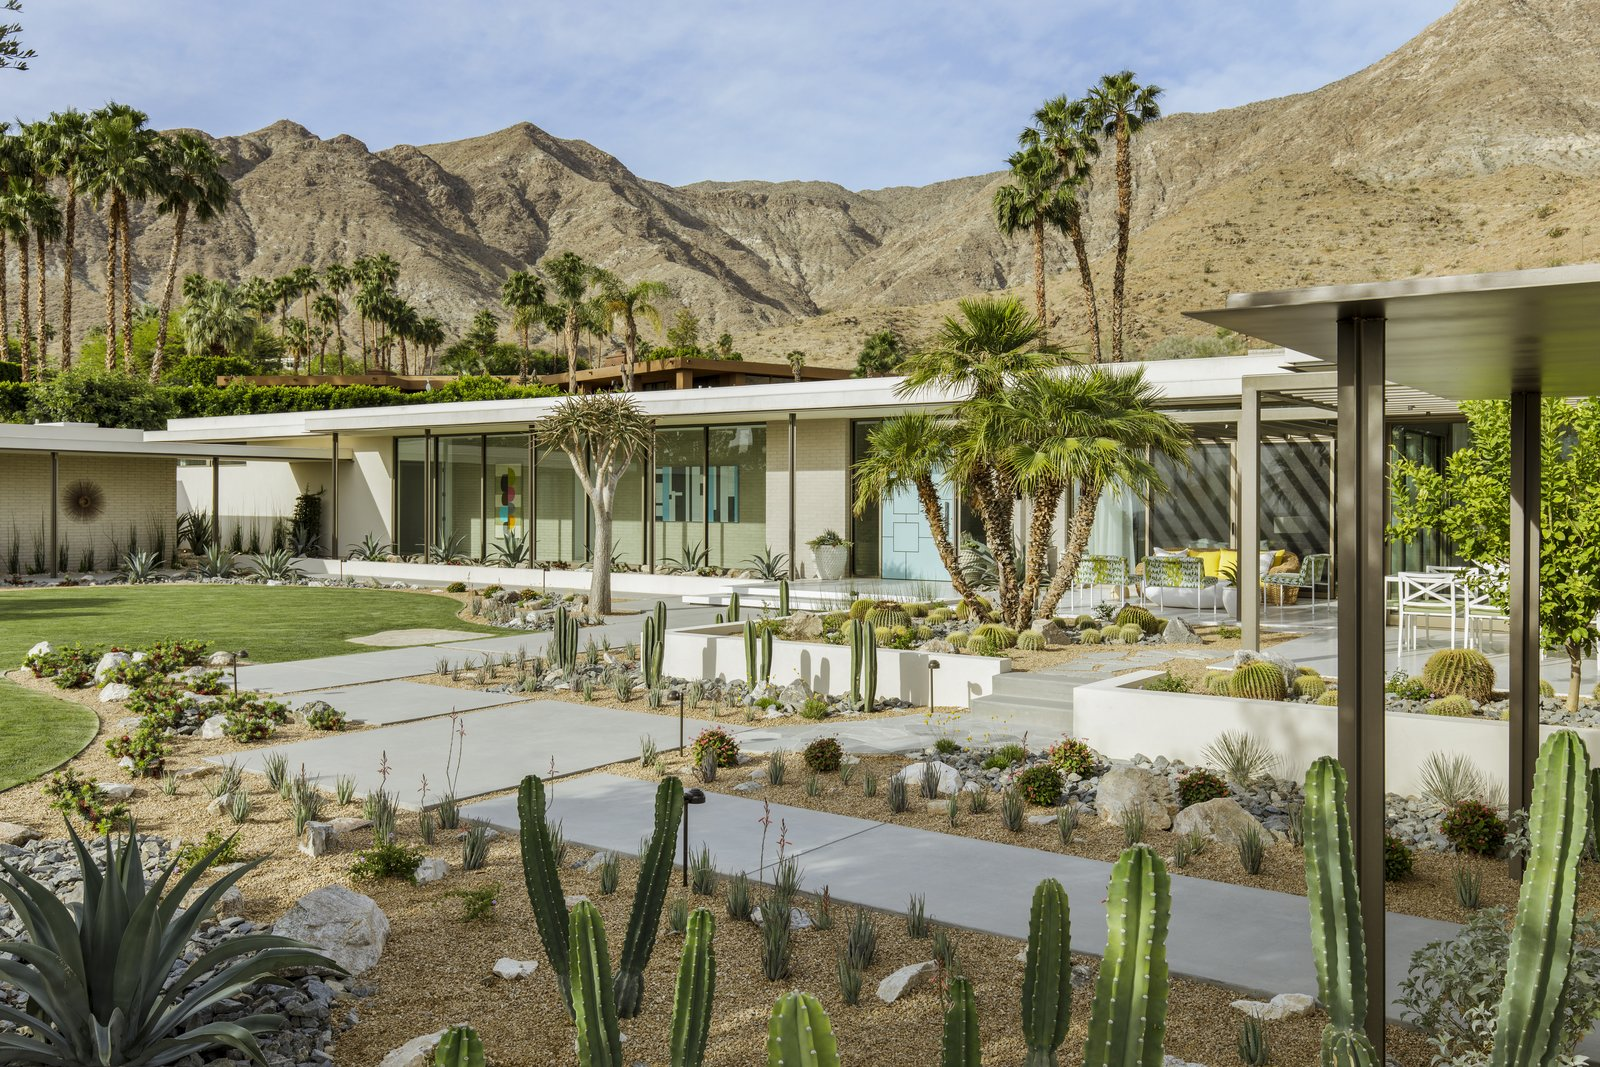 """Outdoor, Trees, Gardens, Walkways, Front Yard, Desert, and Hardscapes """"The client's goals were to create an open and light-filled home that maximized views of the Coachella Valley below and the Santa Rosa mountains to the south and west,"""" says designer Stuart Silk Architects. Thunderbird Heights Residence enjoys a fluid connection between the primary indoor rooms and the outdoor terraces both for entertaining and casual outdoor living.  Outdoor Desert Photos from Thunderbird Heights Residence"""